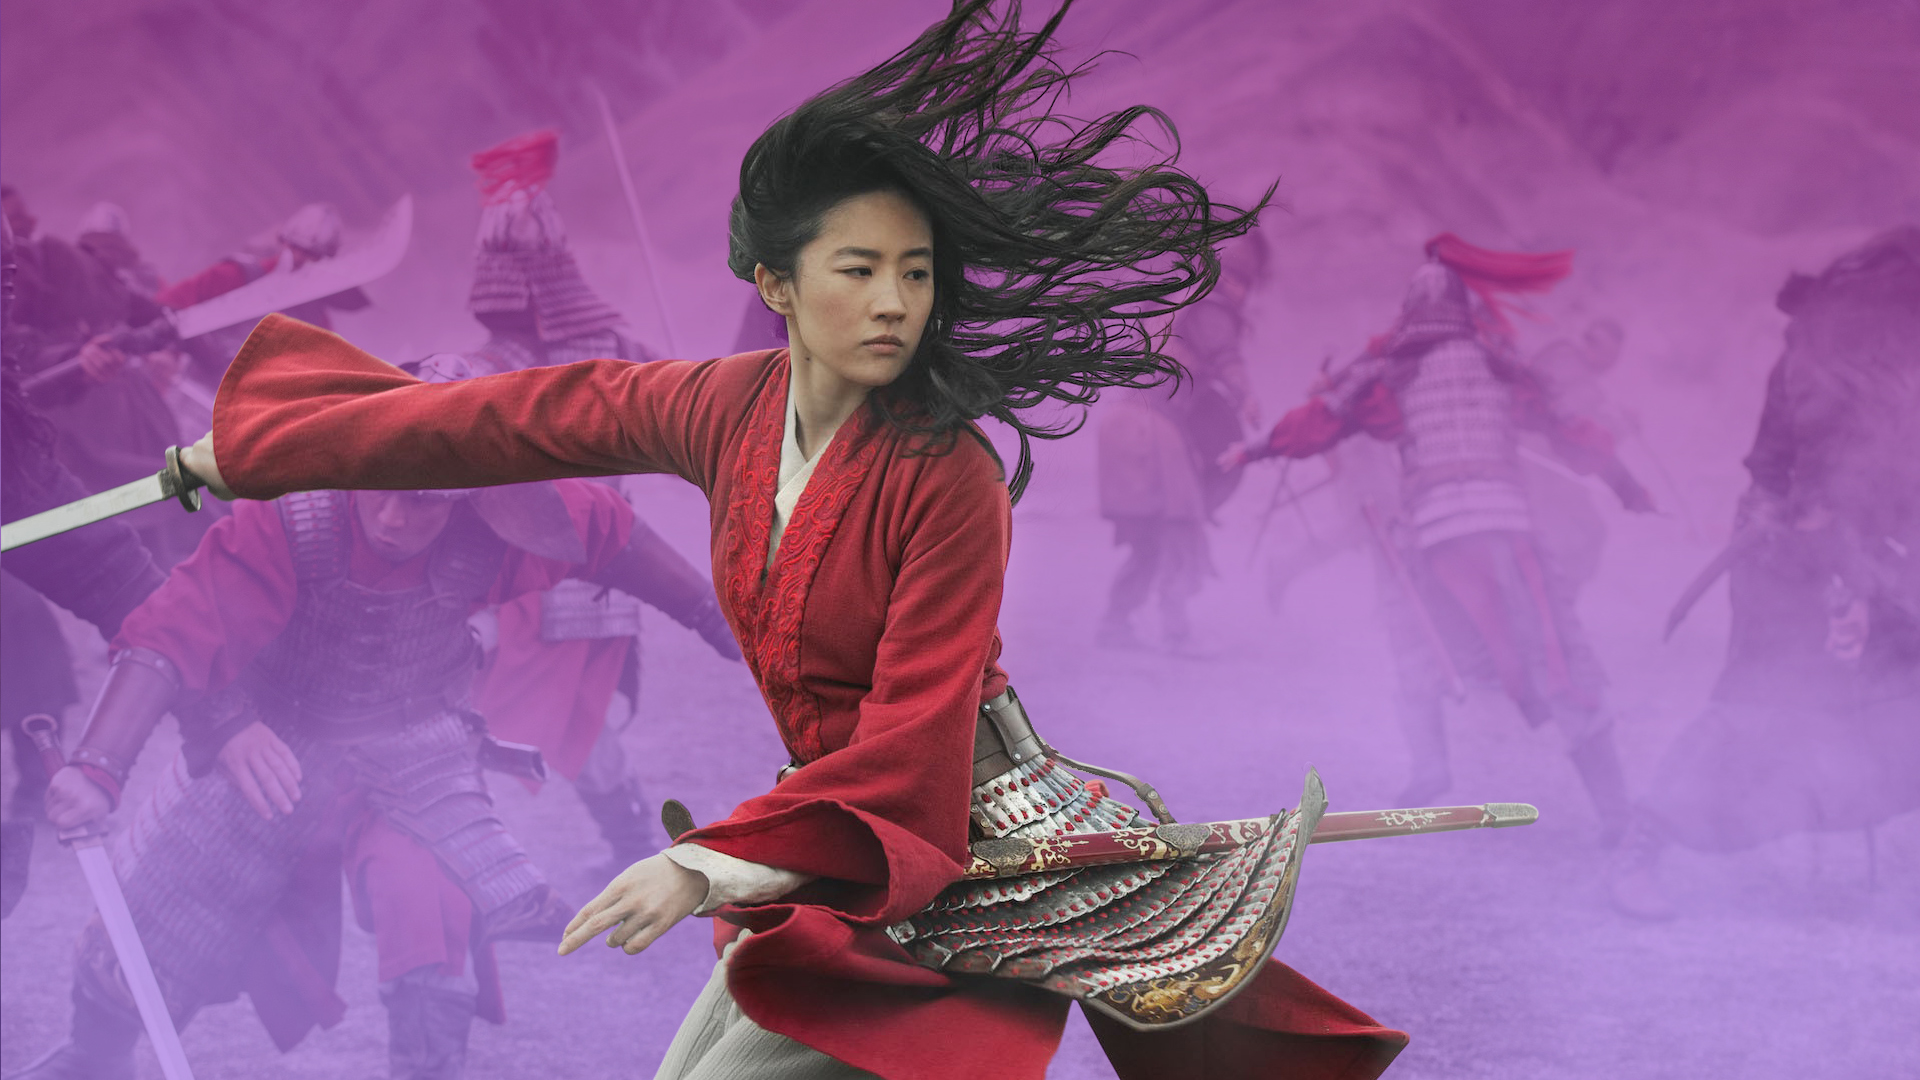 Character Mulan fighting in a battle with a sword on a misty purple background